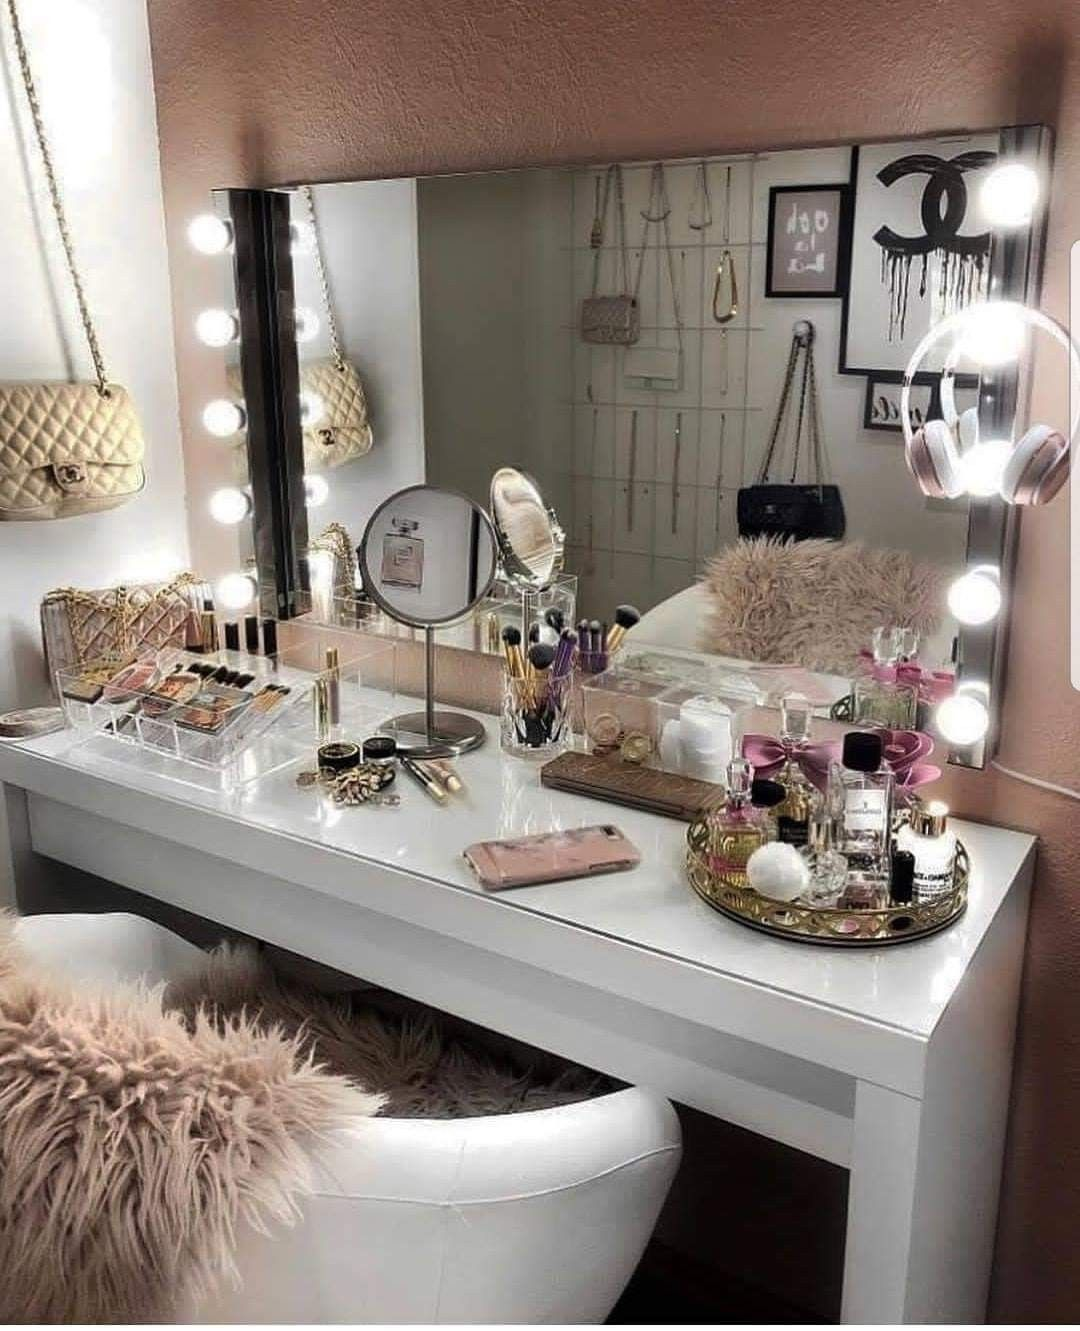 17 Makeup Organizers And Storage Ideas images